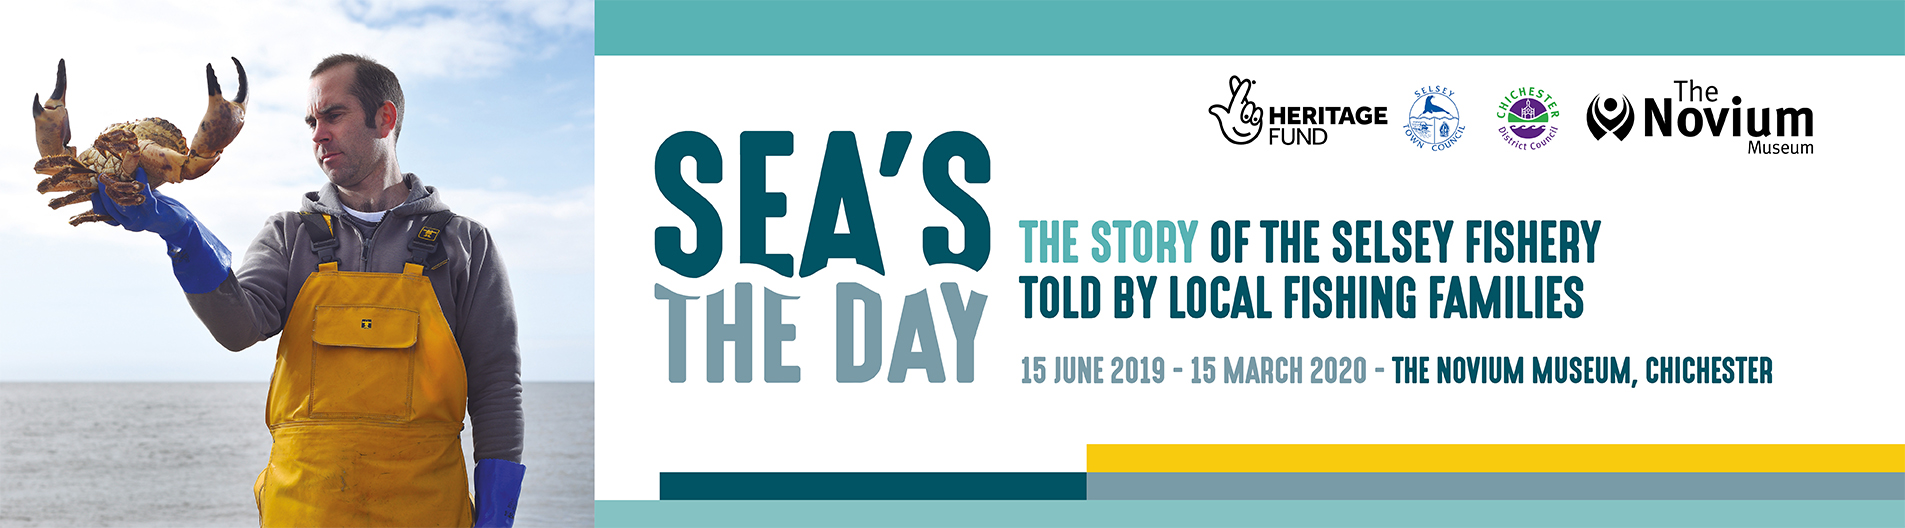 Seas the Day campaign